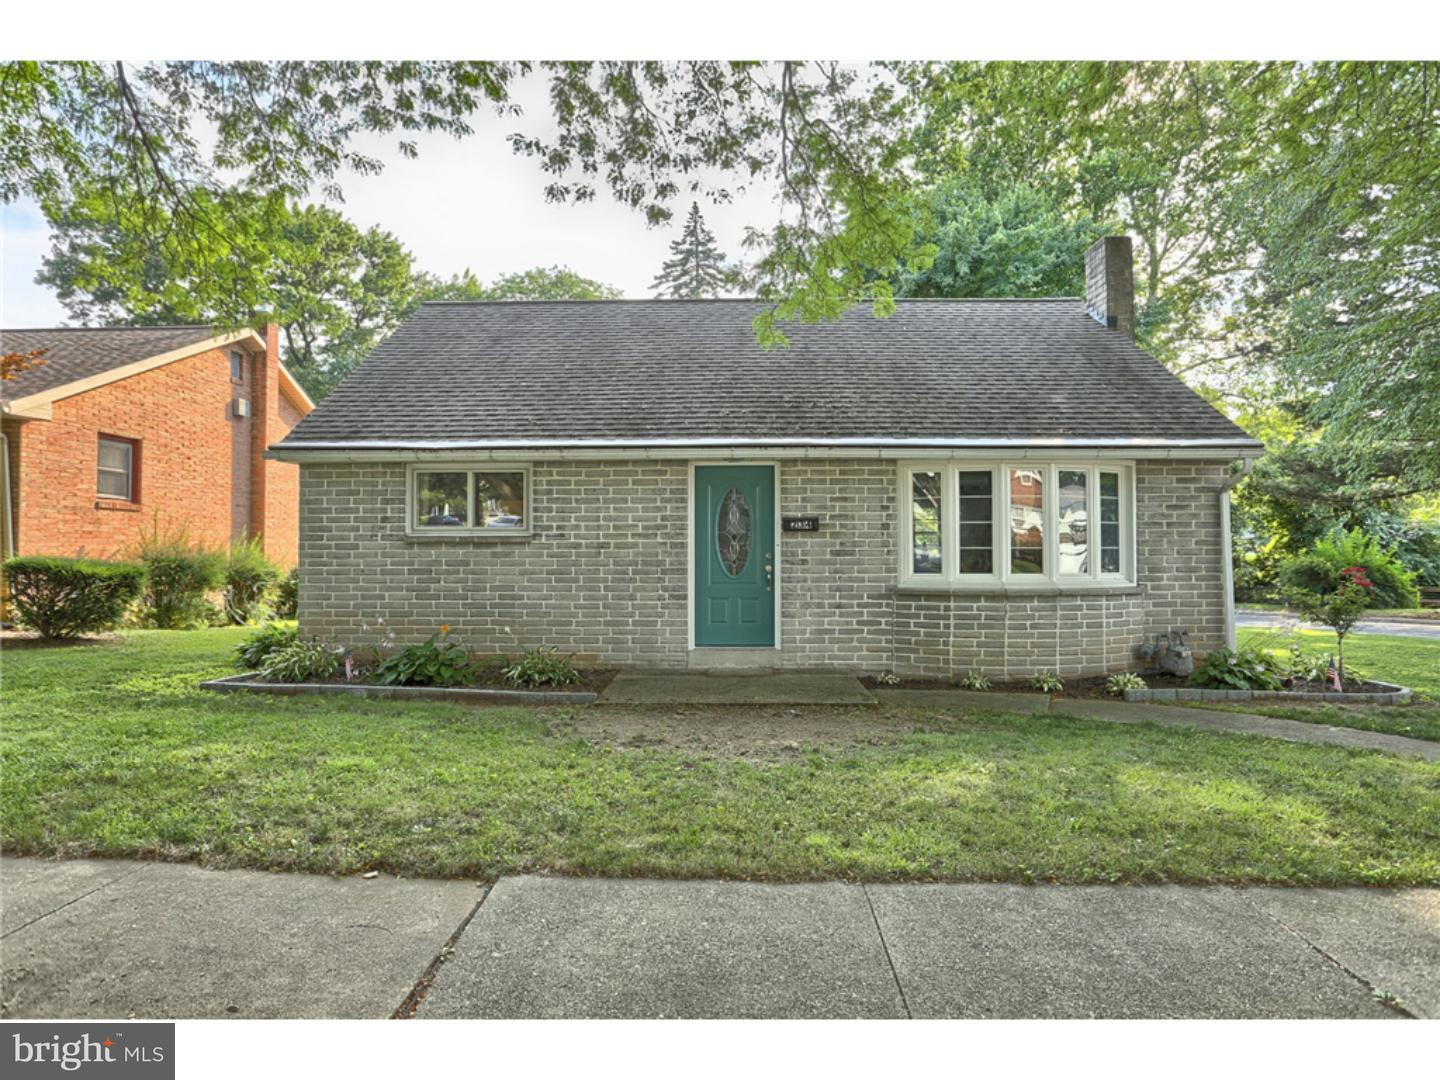 234 JEFFERSON BLVD, WEST LAWN - Listed at $225,000, WEST LAWN